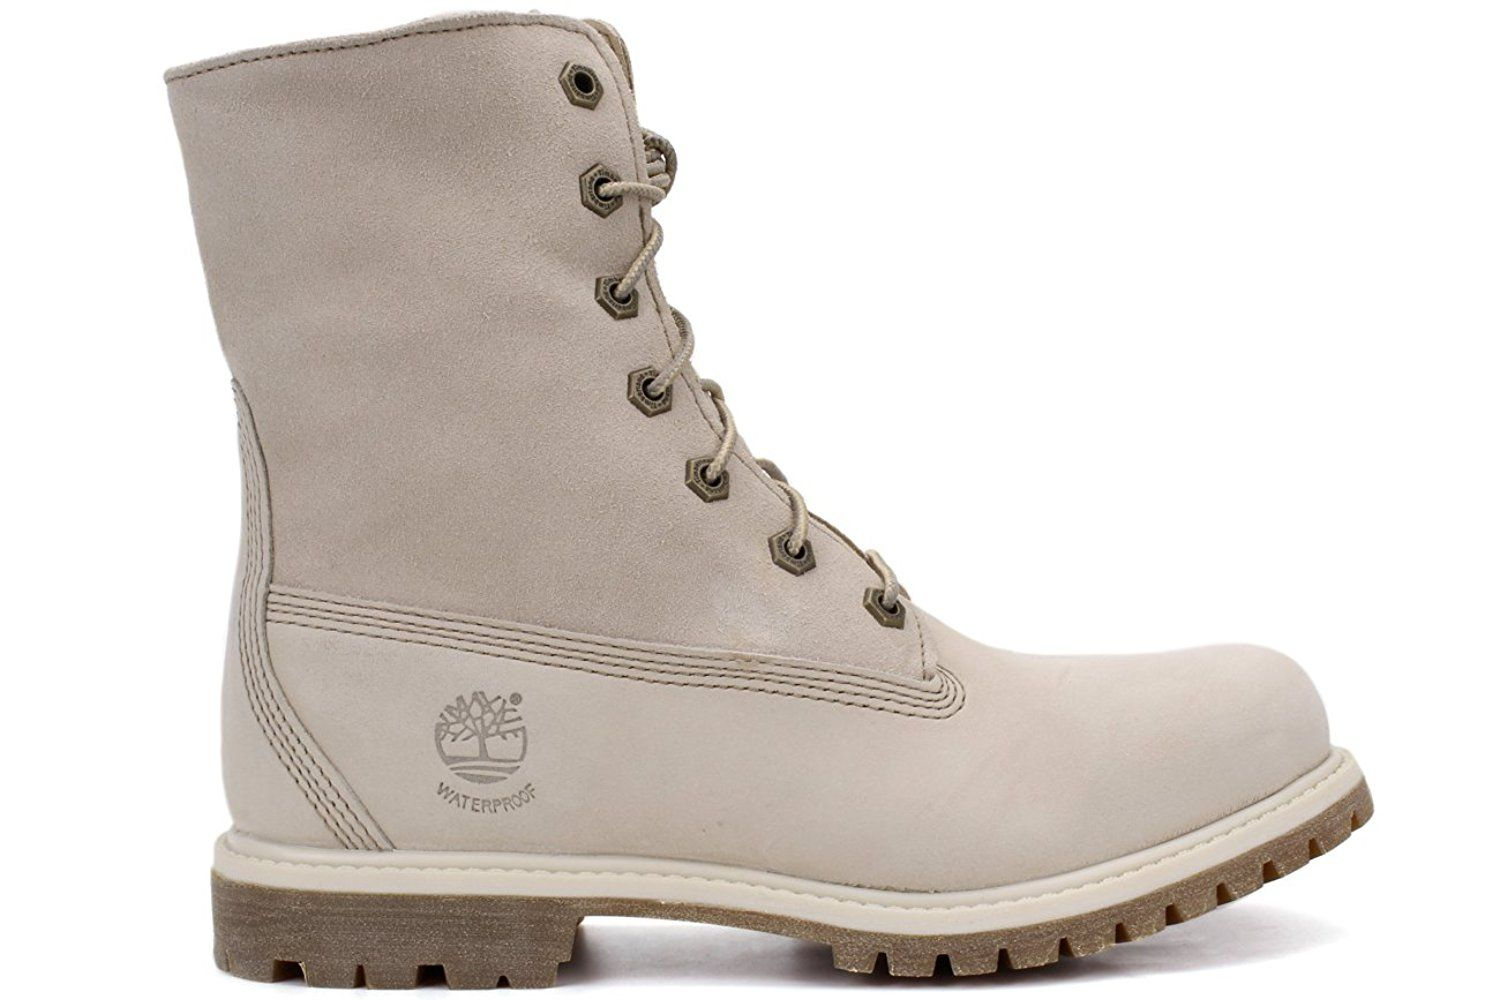 premium selection 42c2a 15f65 Timberland Women s Authentics Waterproof Fold-Down Teddy Fleece Boots  White, 7     To view further for this item, visit the image link.